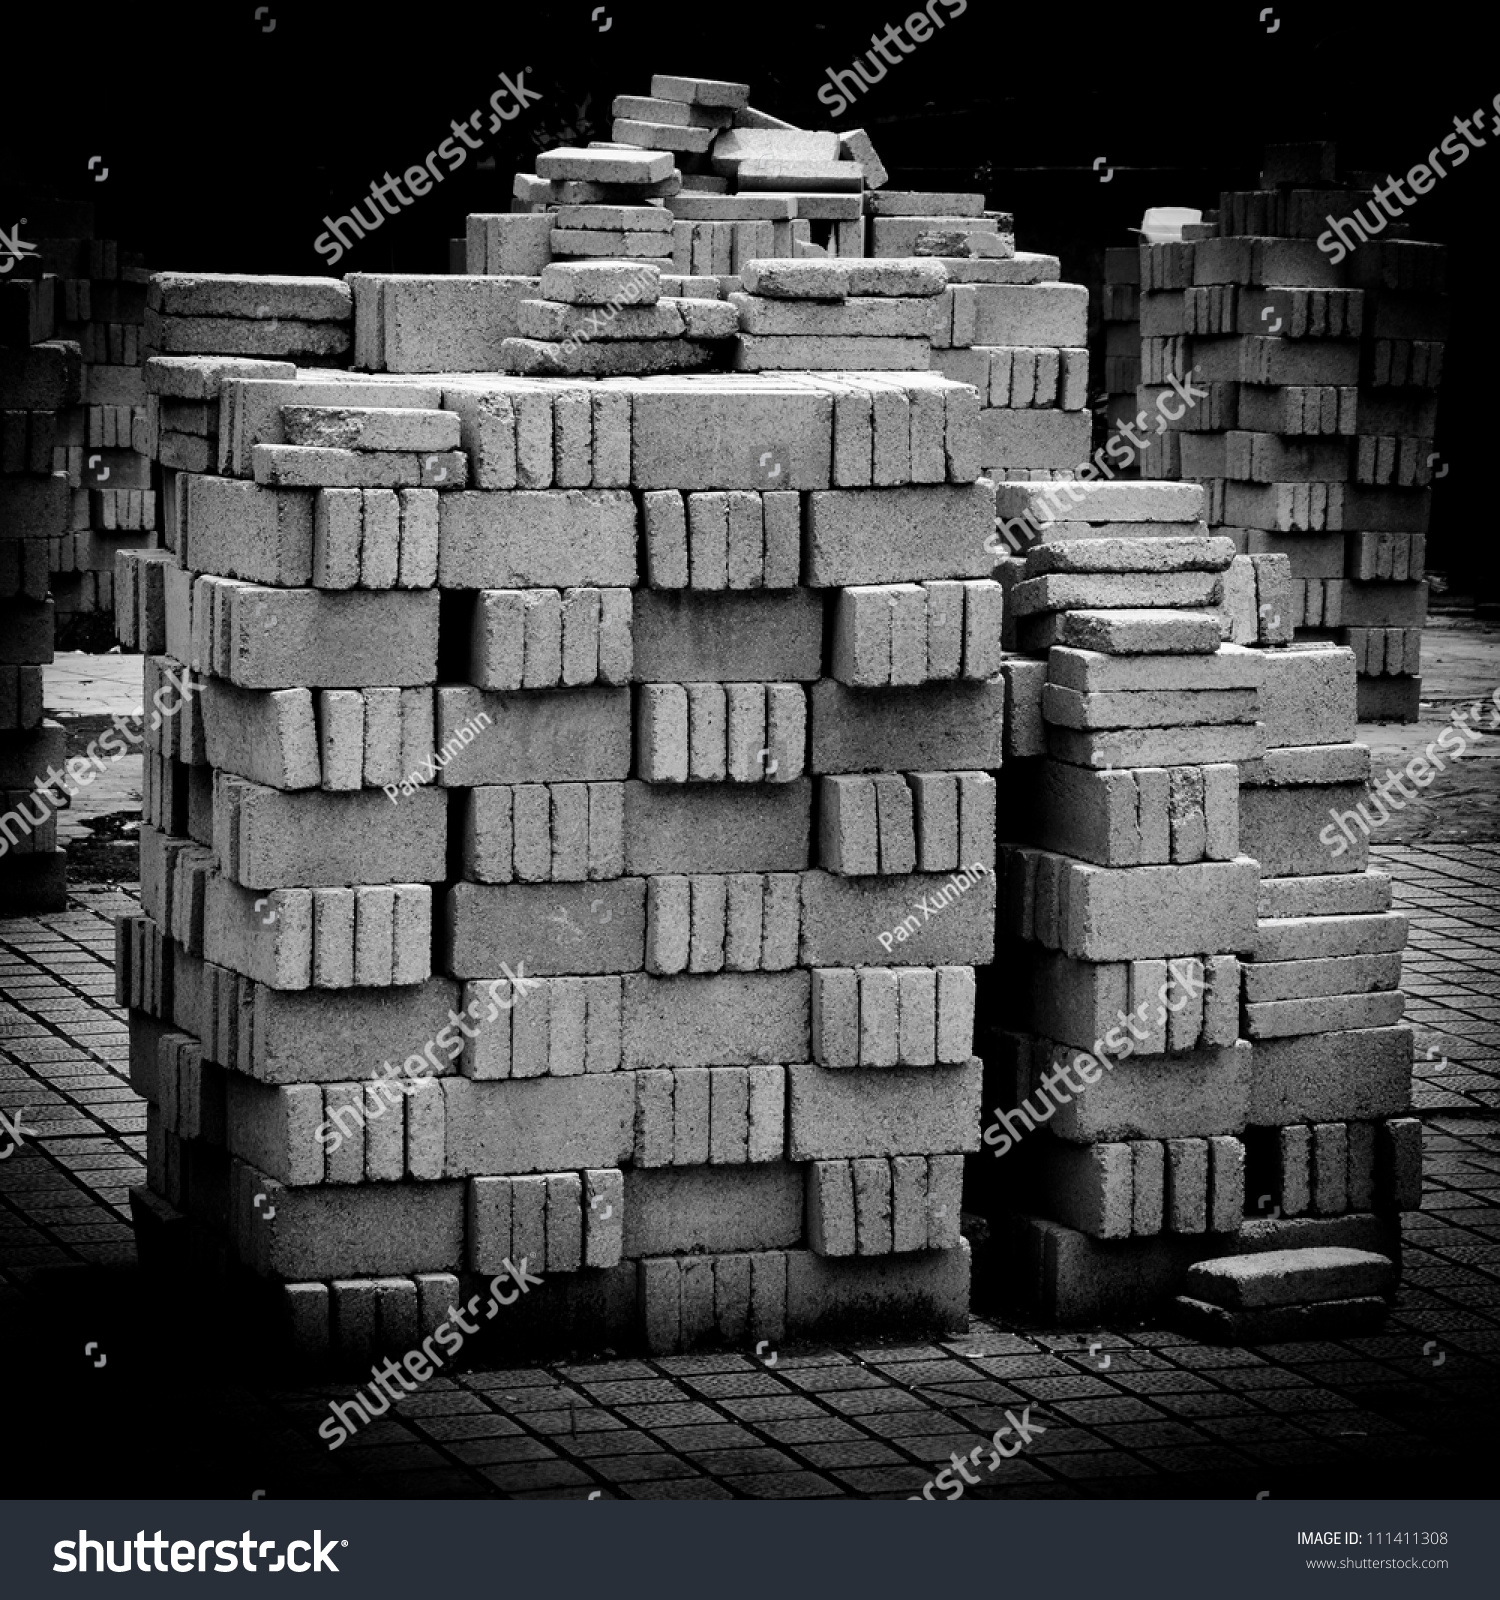 pile of bricks Pile of bricks under the strong sun texture wallpaper red bricks pile with sunlight background stack for construction pile of bricks isolated on white construction concept 3d illustration stack of old red bricks isolated on white background pile of bricks by an old brick wall (taken by an old building in saint john new brunswick on one of.